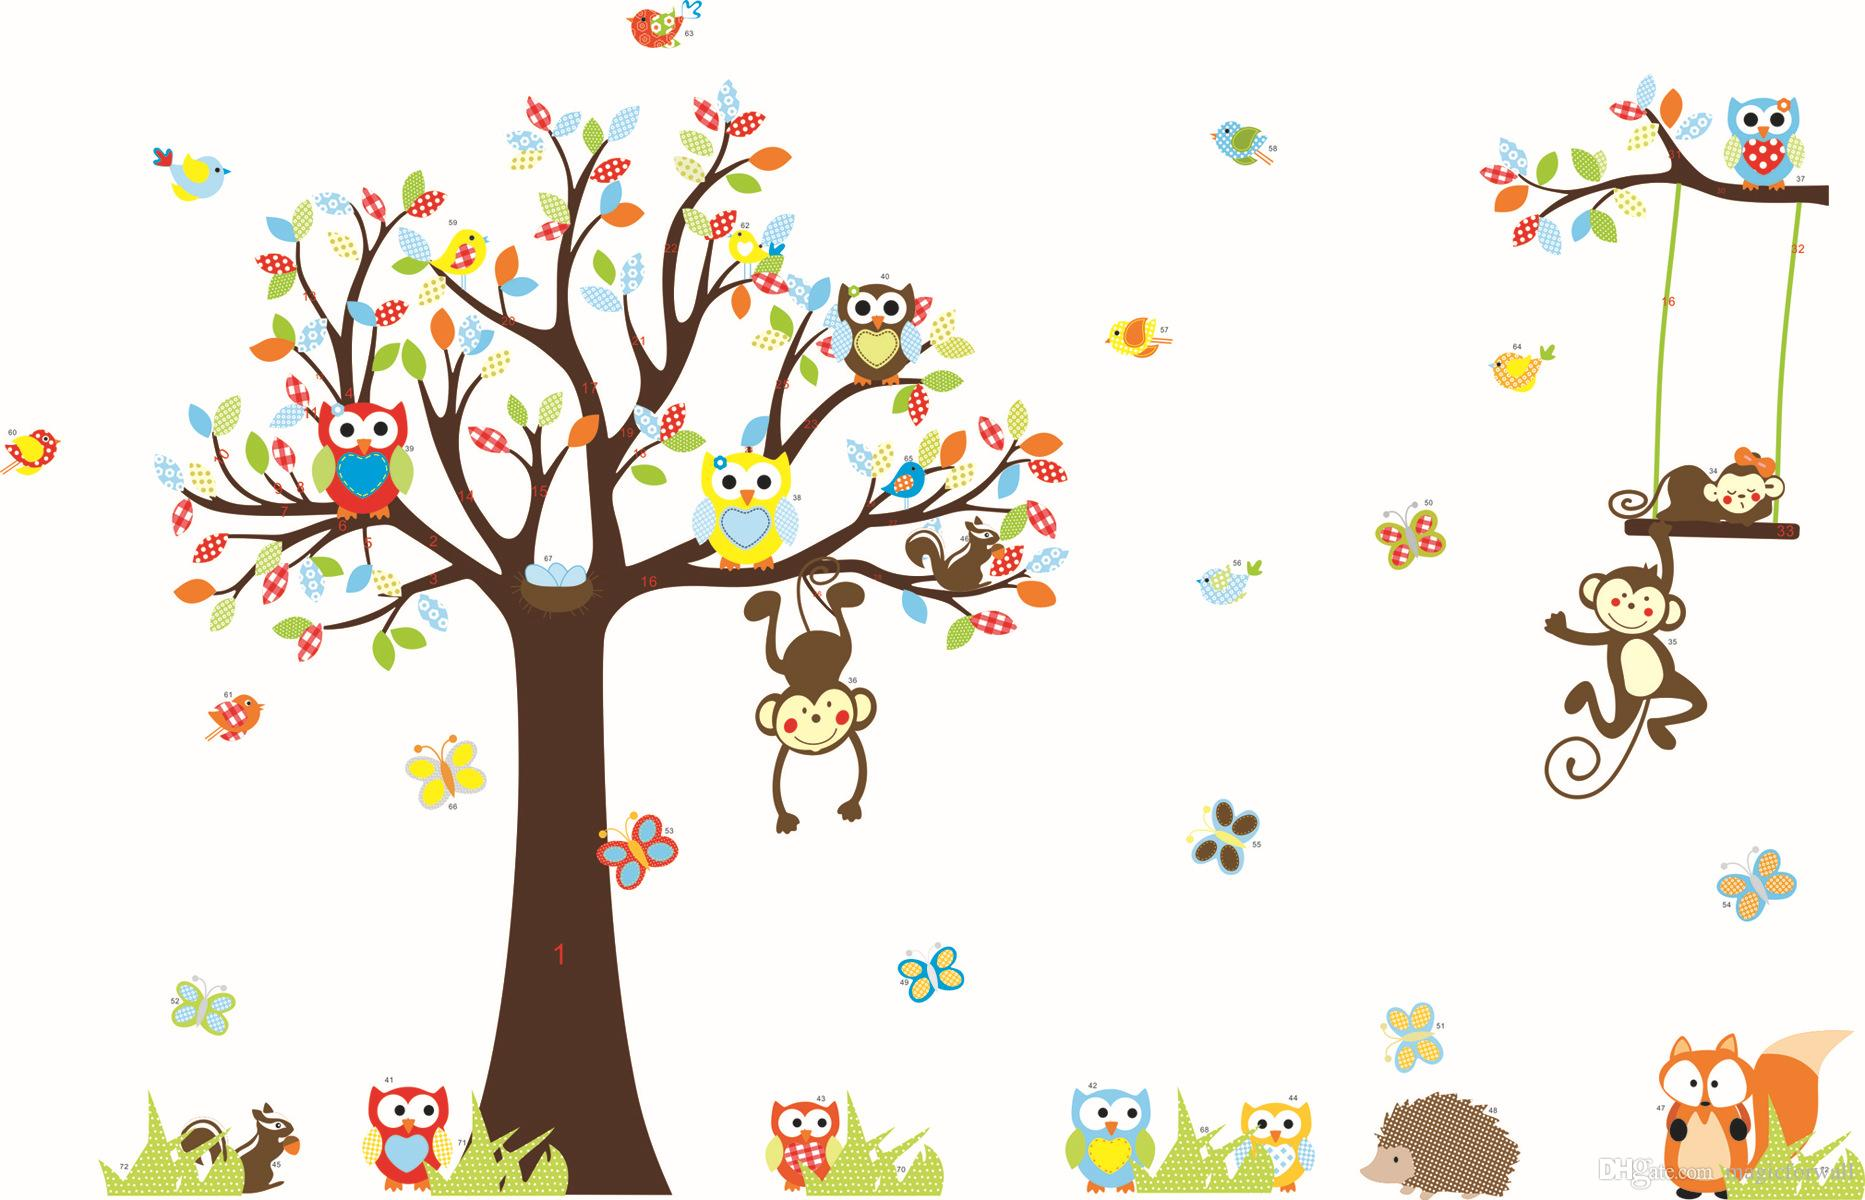 Hot Sale Monkey Owls Squirrel Forest Wall Art Mural Decor Sticker Kids Room Nursery Wall Decoration Decal Poster